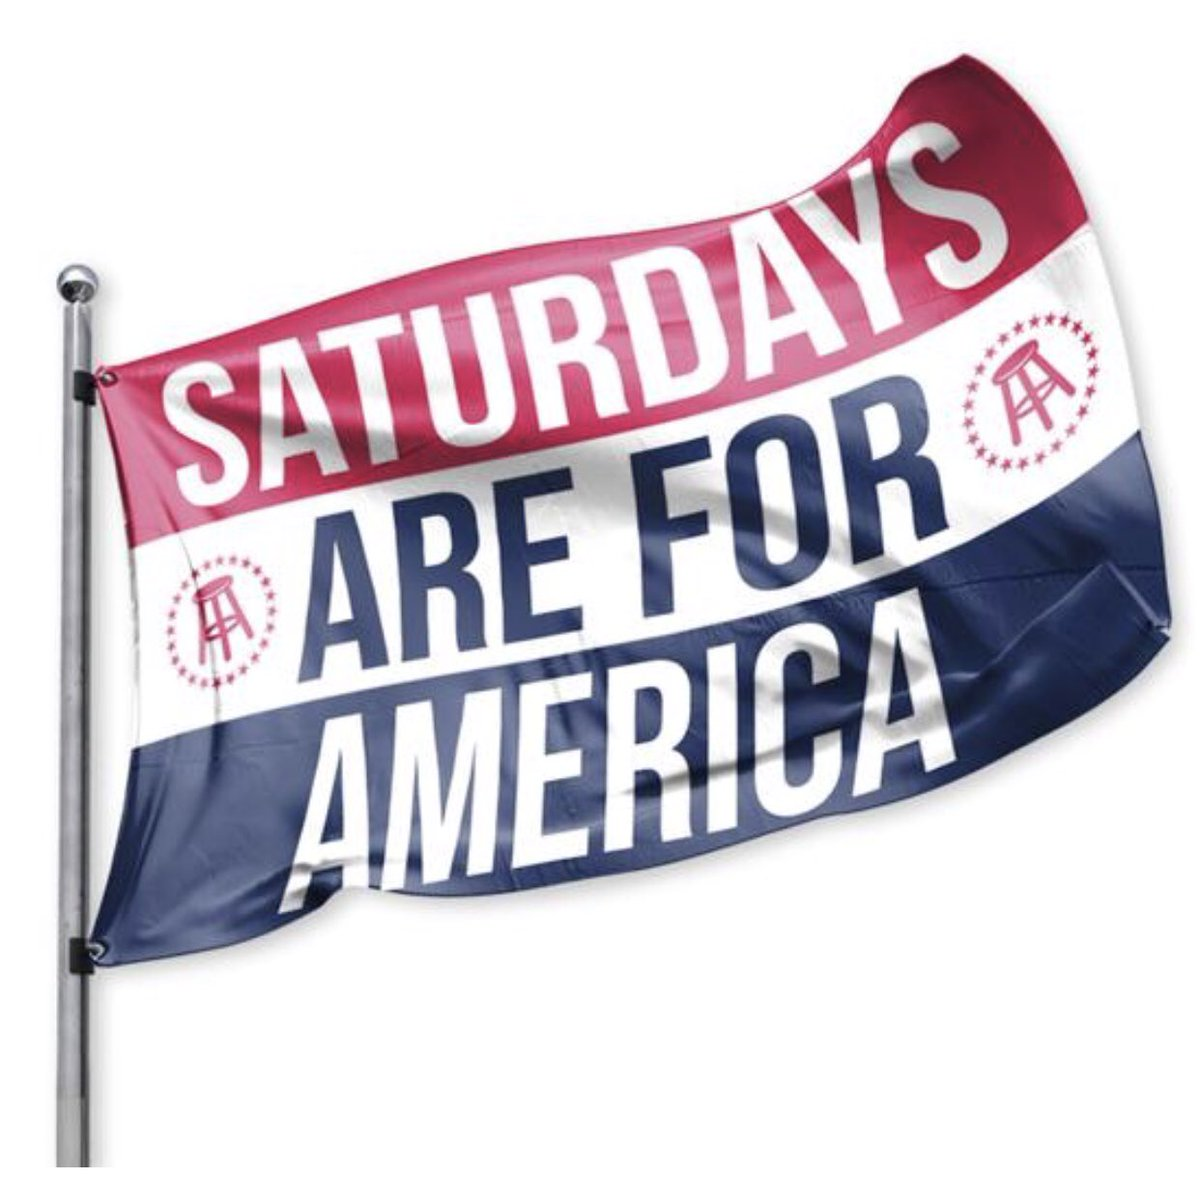 🇺🇸 20% off today only store.barstoolsports.com